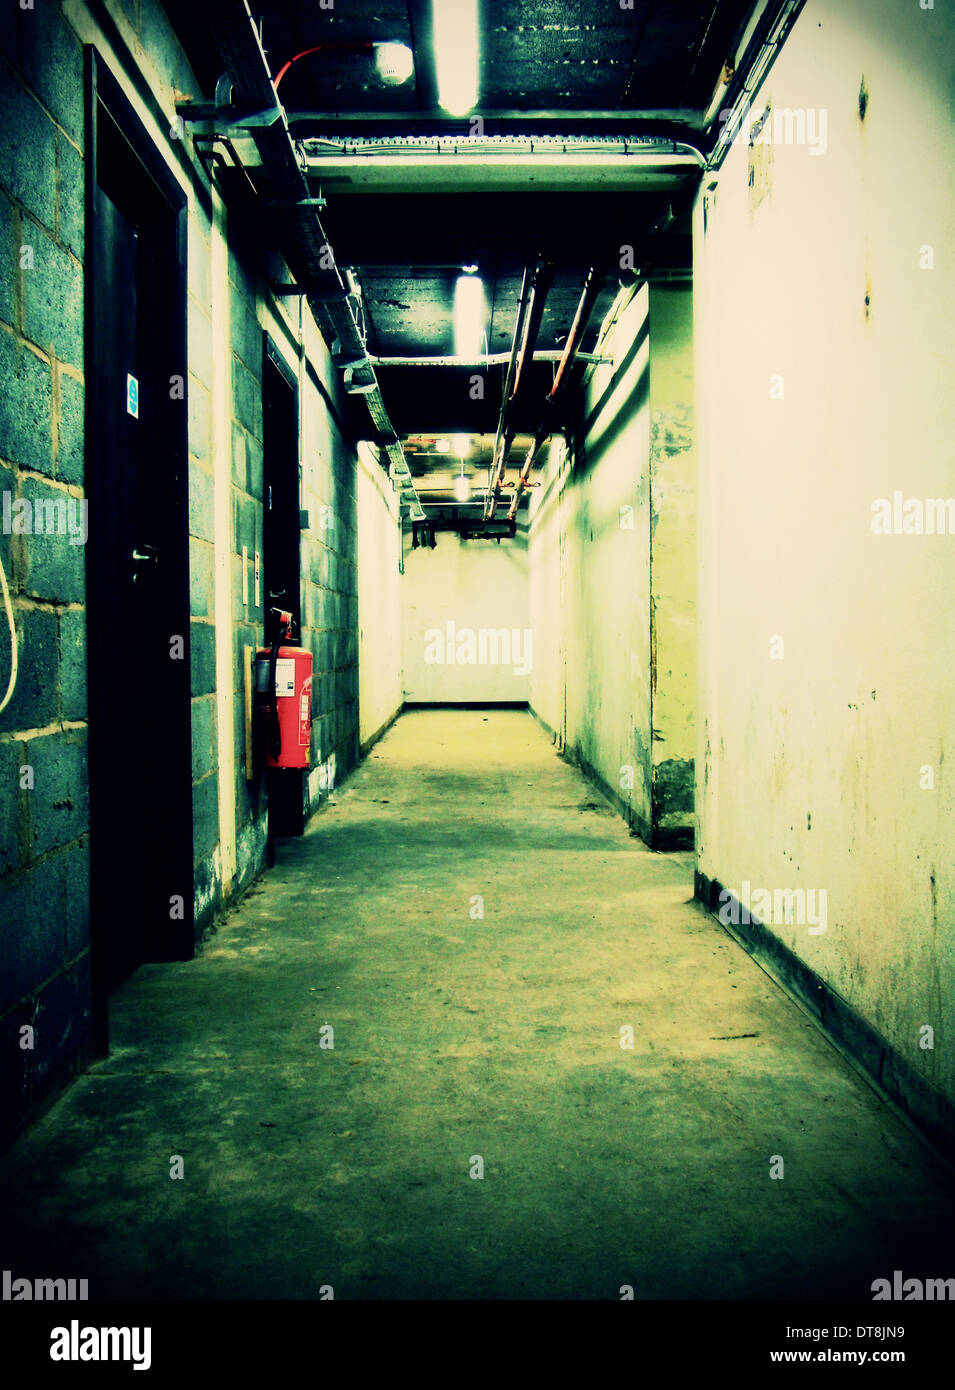 Office building basement - Stock Image